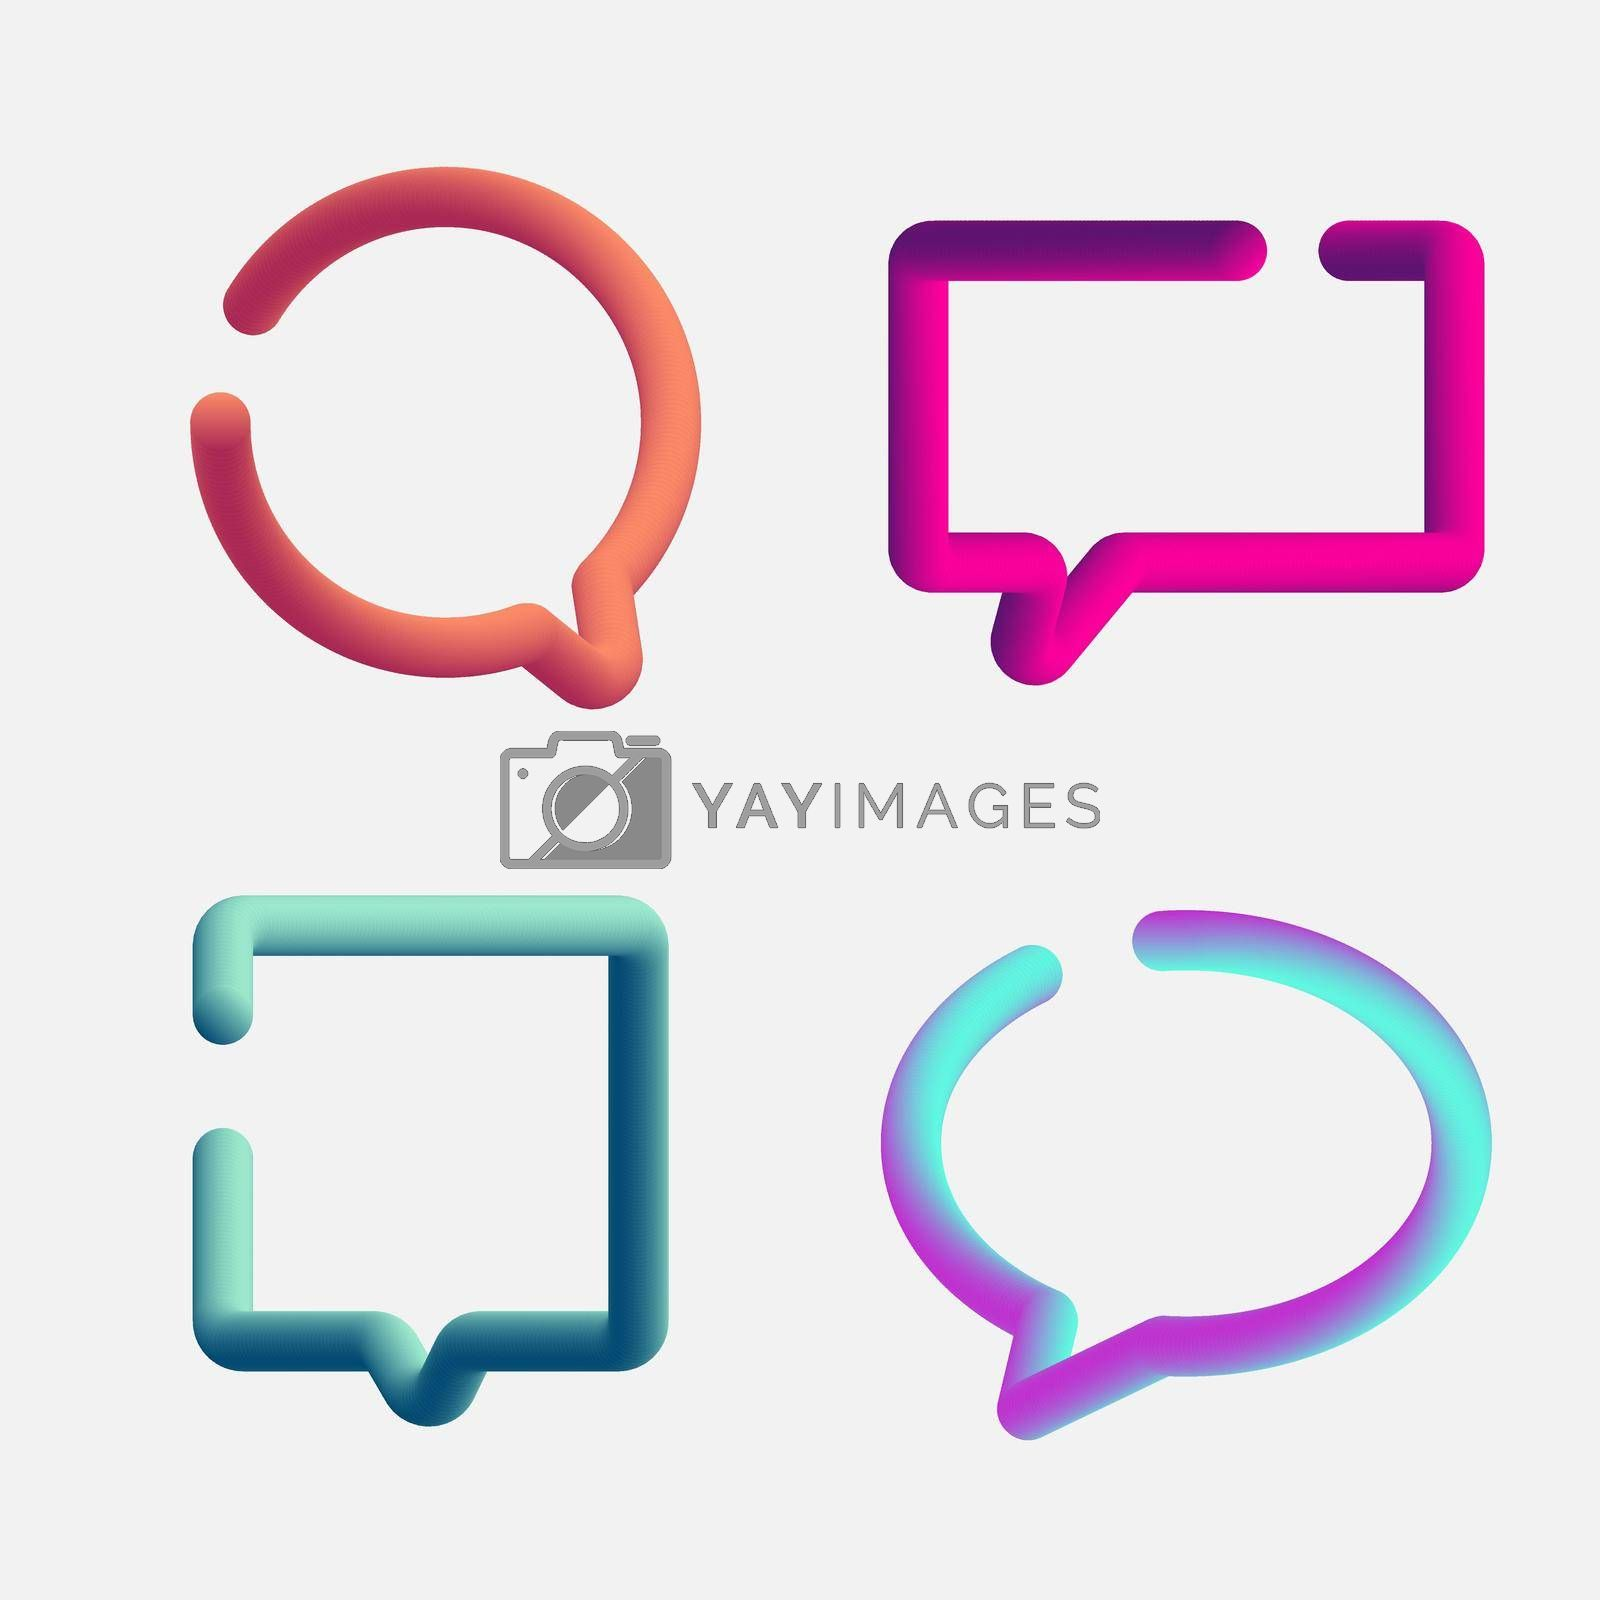 Royalty free image of Set of 3d speech bubbles contour fluid or liquid vibrant gradient color isolated on white background by phochi